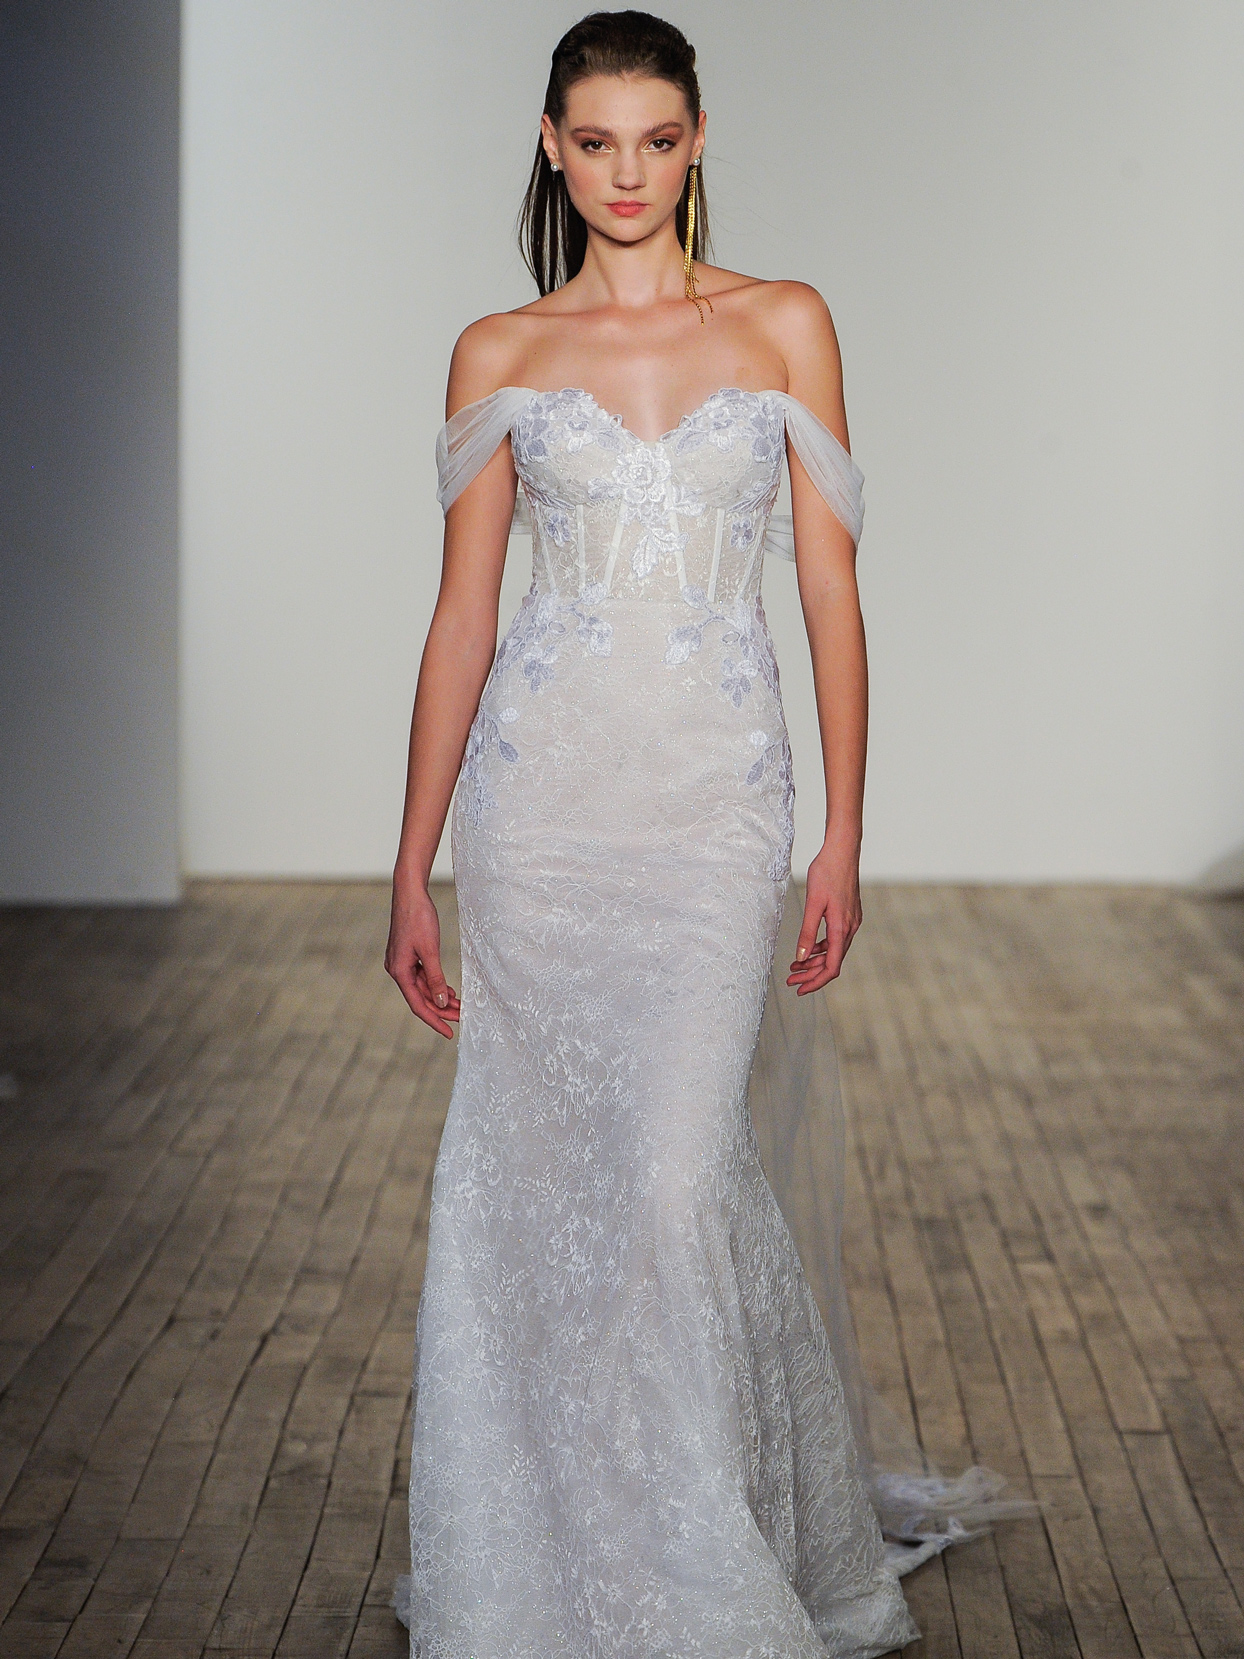 Hayley Paige off-the-shoulder corset bodice embroidered appliqué wedding dress fall 2020